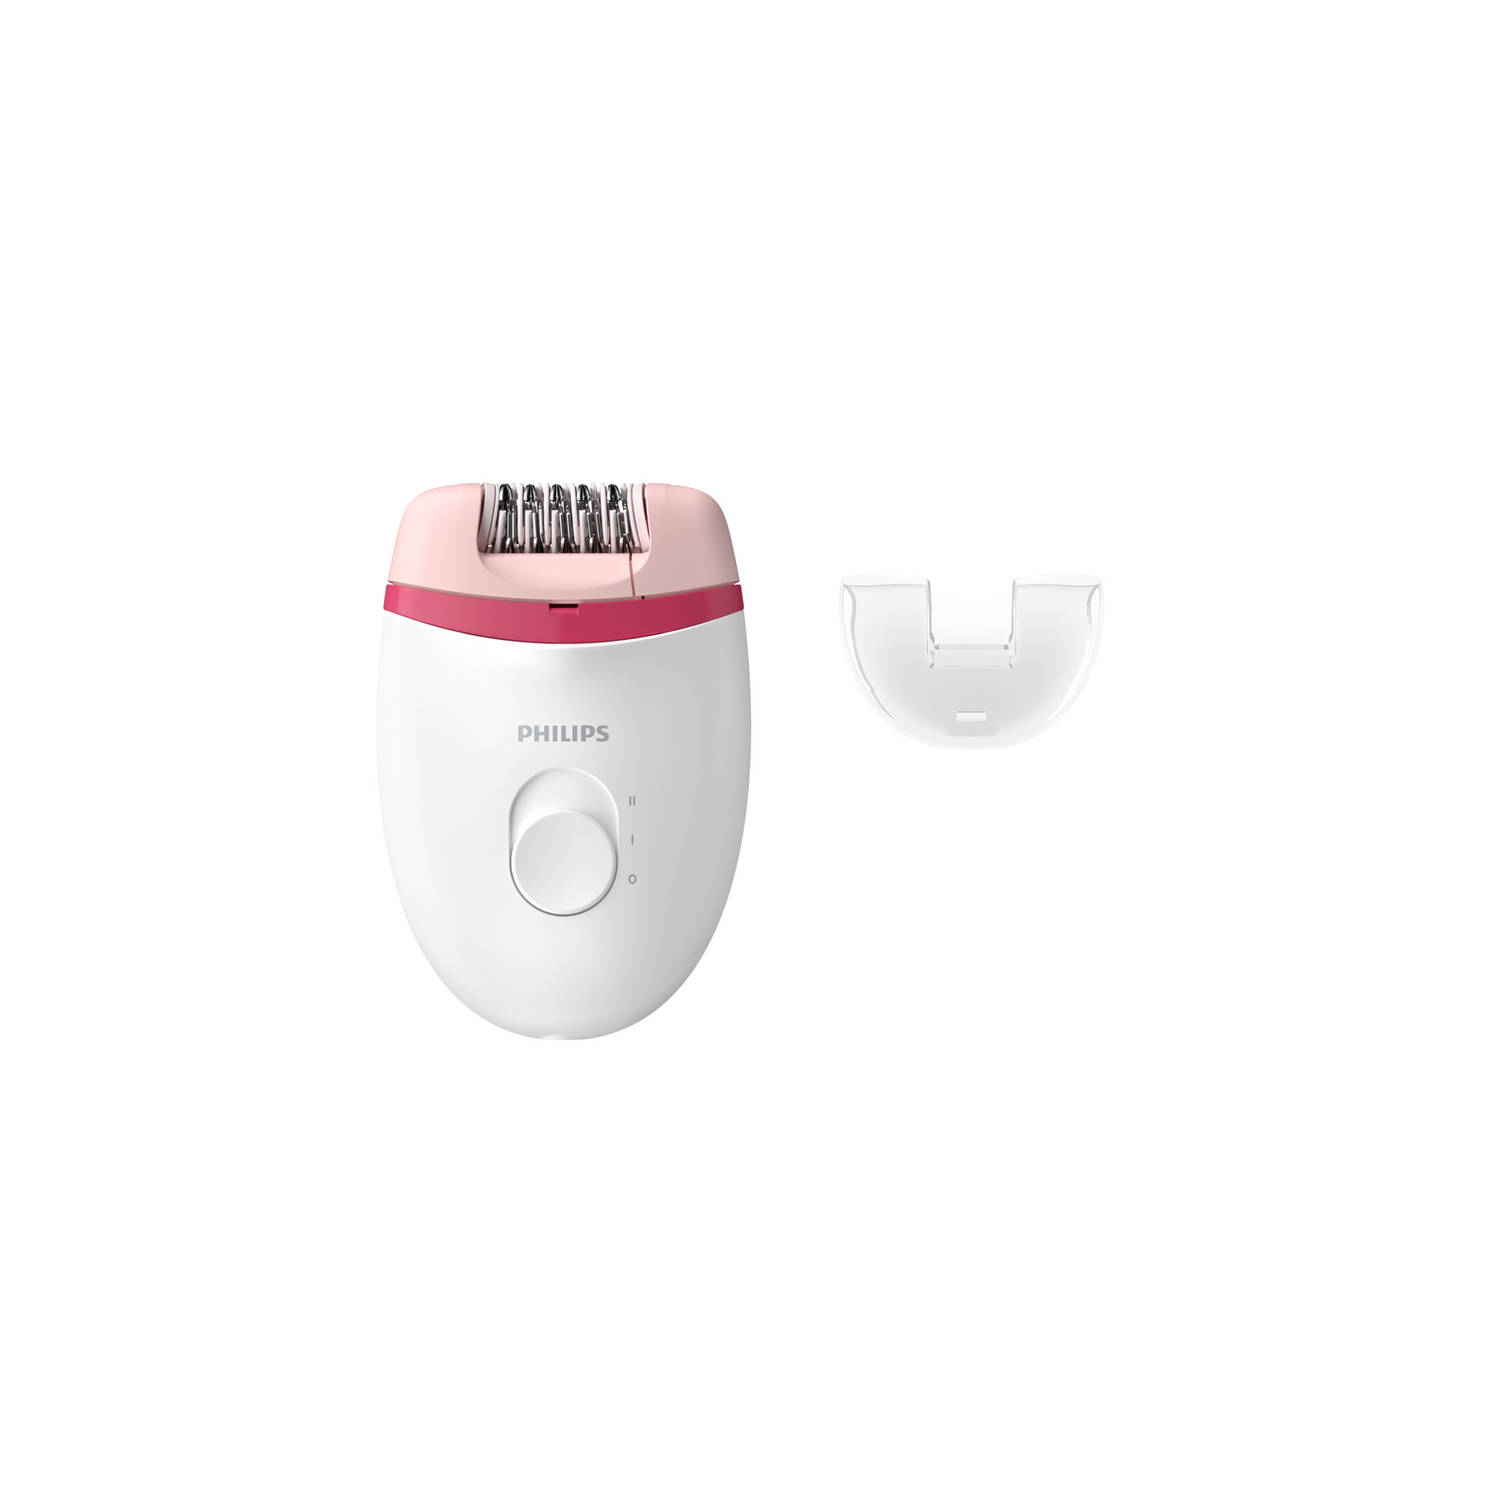 Philips epilator Satinelle Essential BRE235 00 wit roze